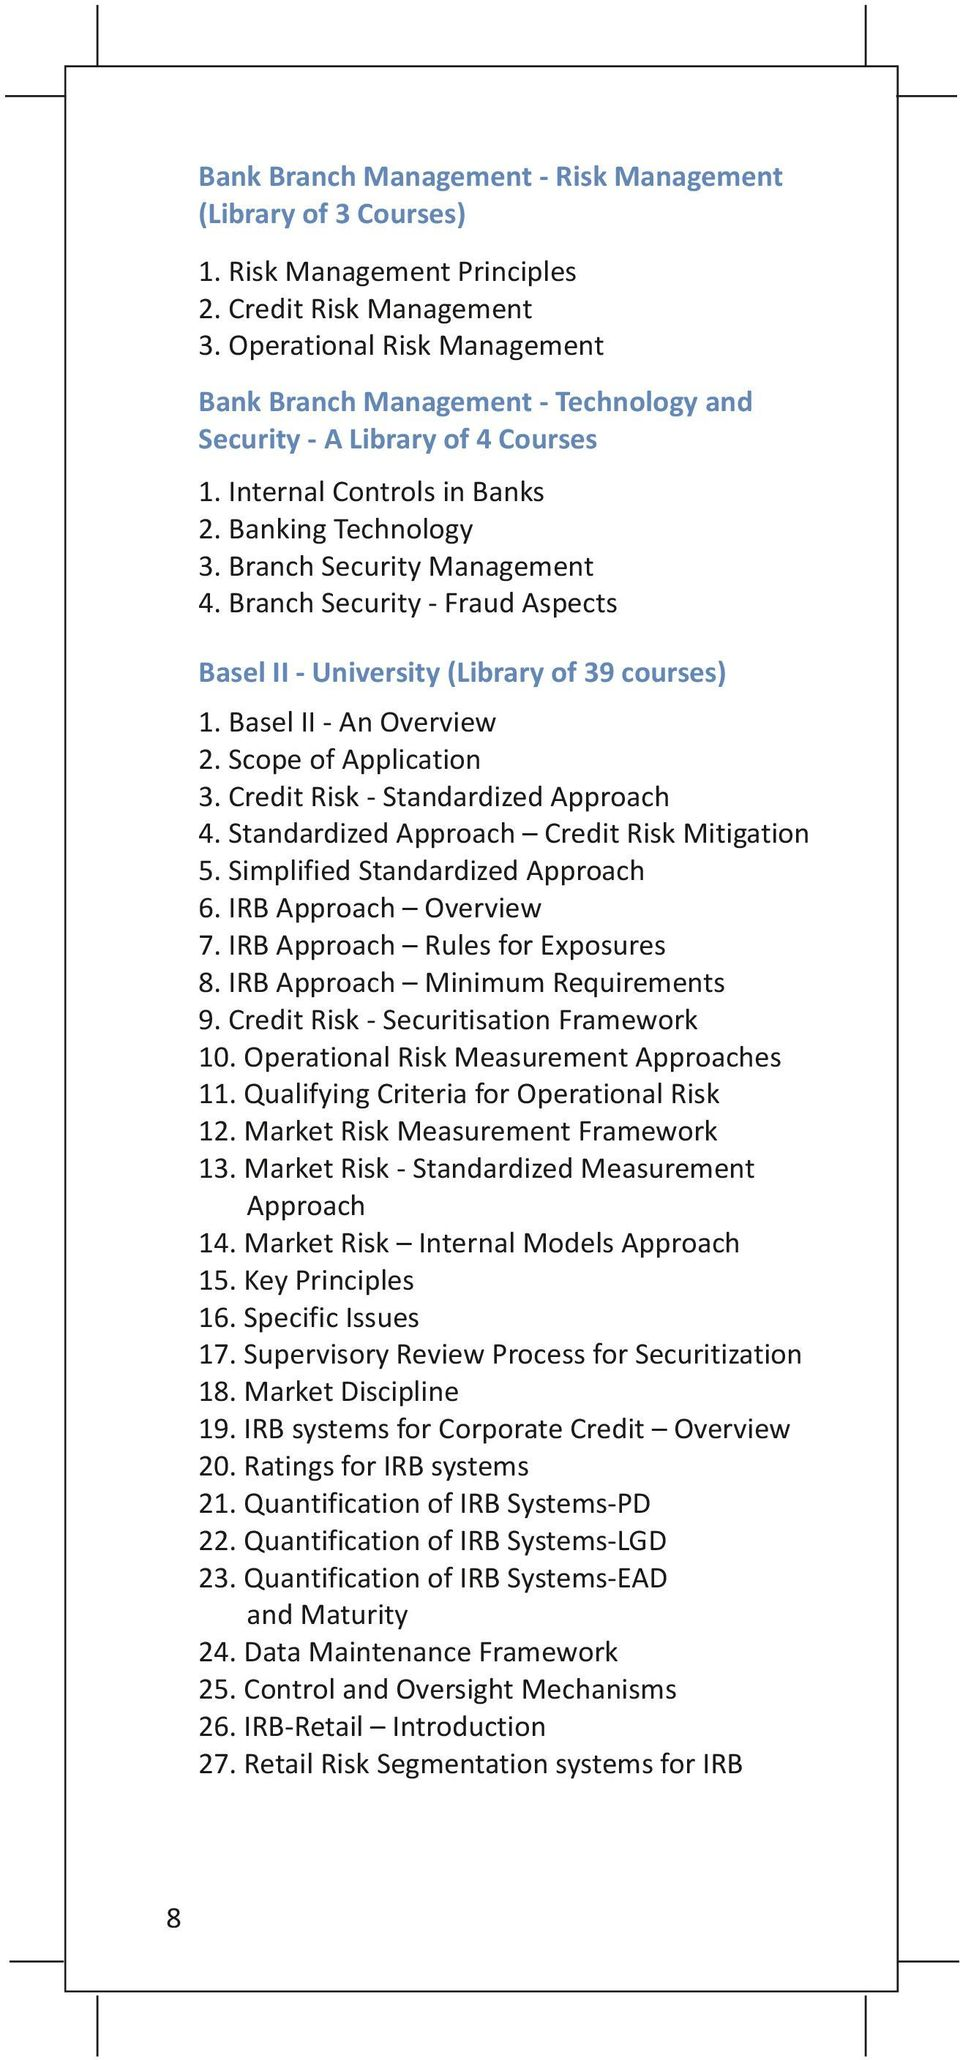 Branch Security - Fraud Aspects Basel II - University (Library of 39 courses) 1. Basel II - An Overview 2. Scope of Application 3. Credit Risk - Standardized Approach 4.